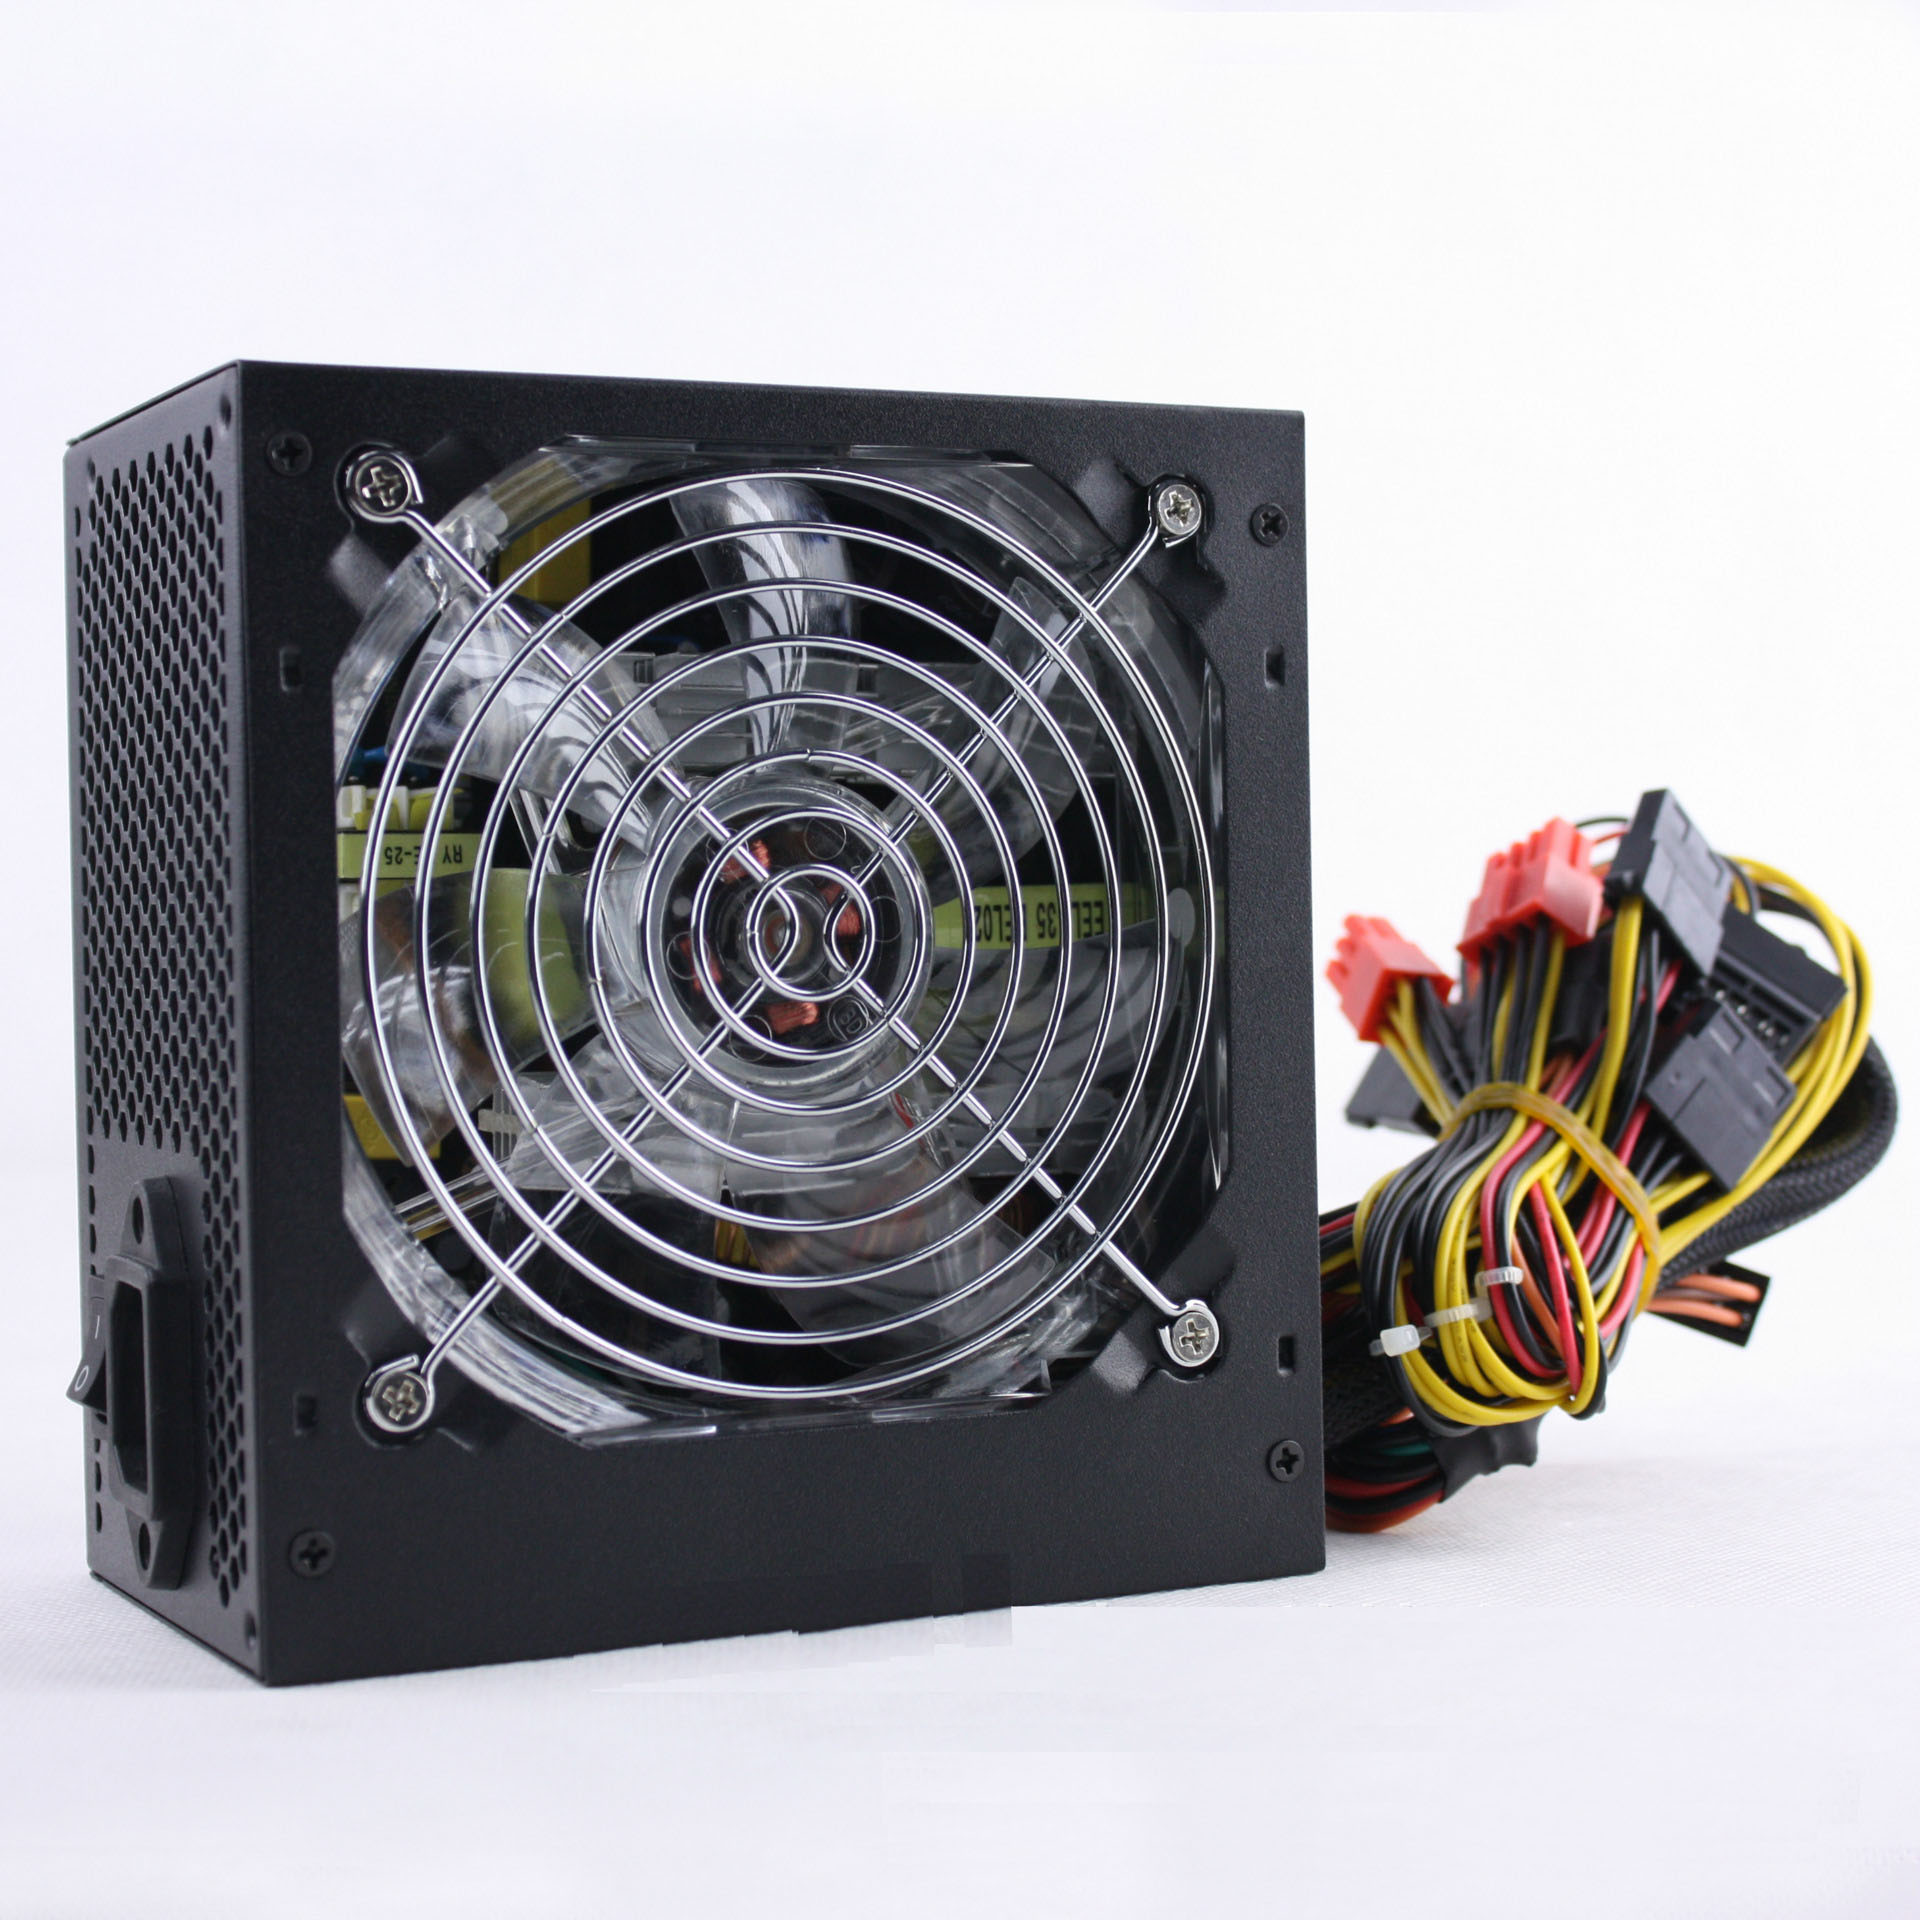 Good quality Psu 1600w -